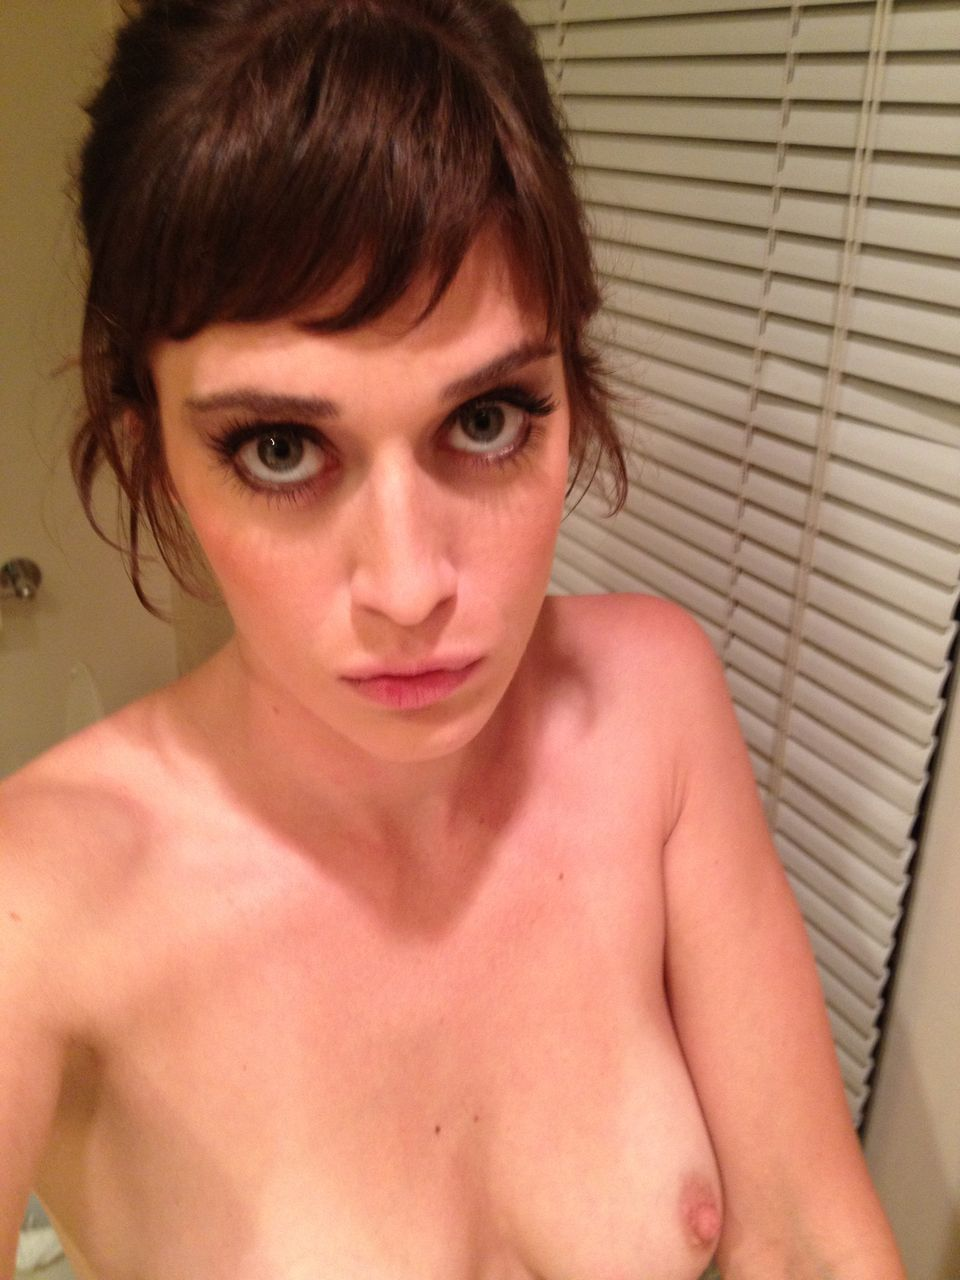 celeb nude pictures leaked pron pictures - aijima